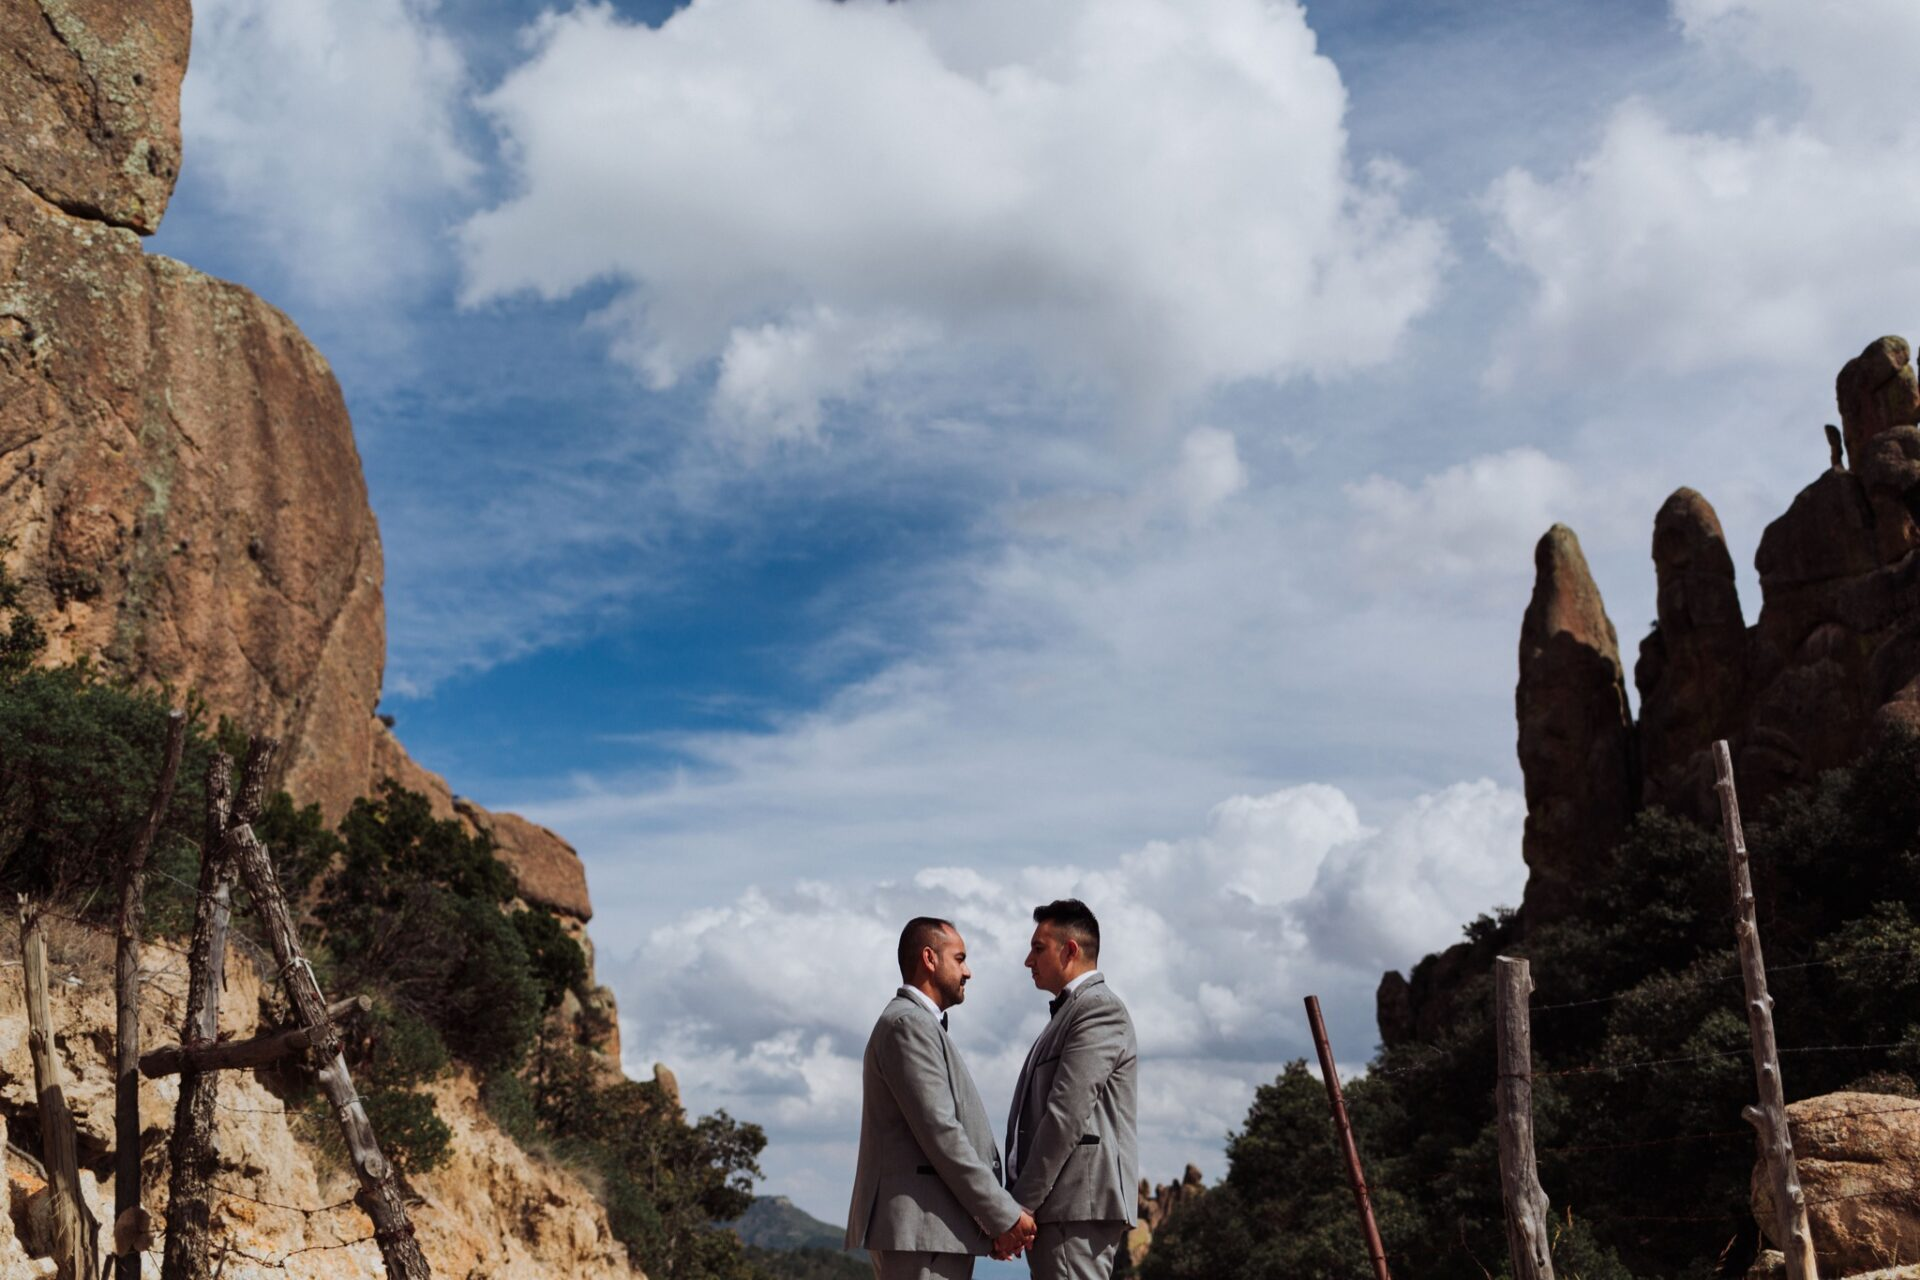 javier_noriega_fotografo_bodas_save_the_date_preboda_zacatecas_wedding_photographer5